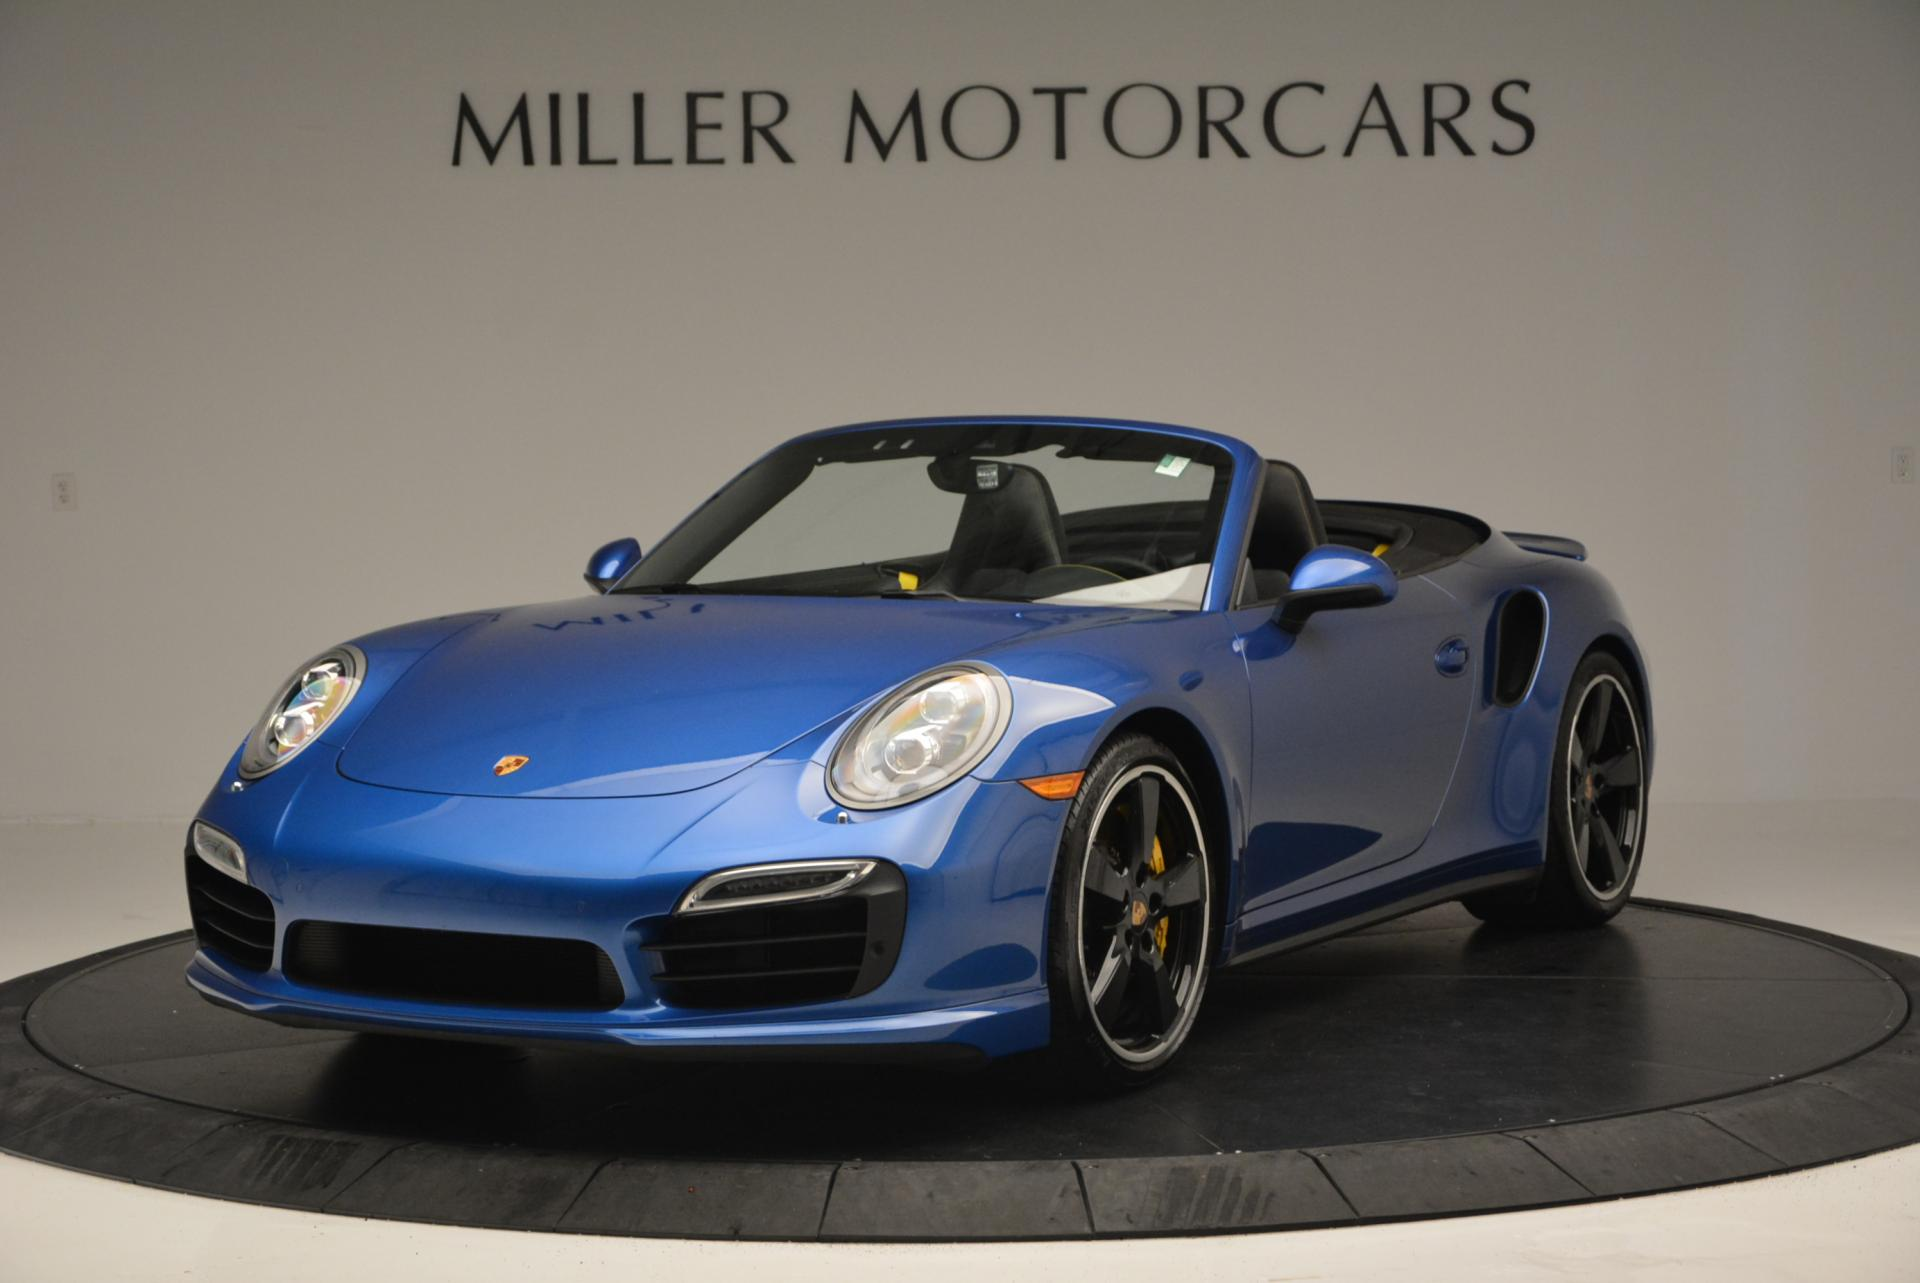 Used 2014 Porsche 911 Turbo S for sale Sold at Pagani of Greenwich in Greenwich CT 06830 1